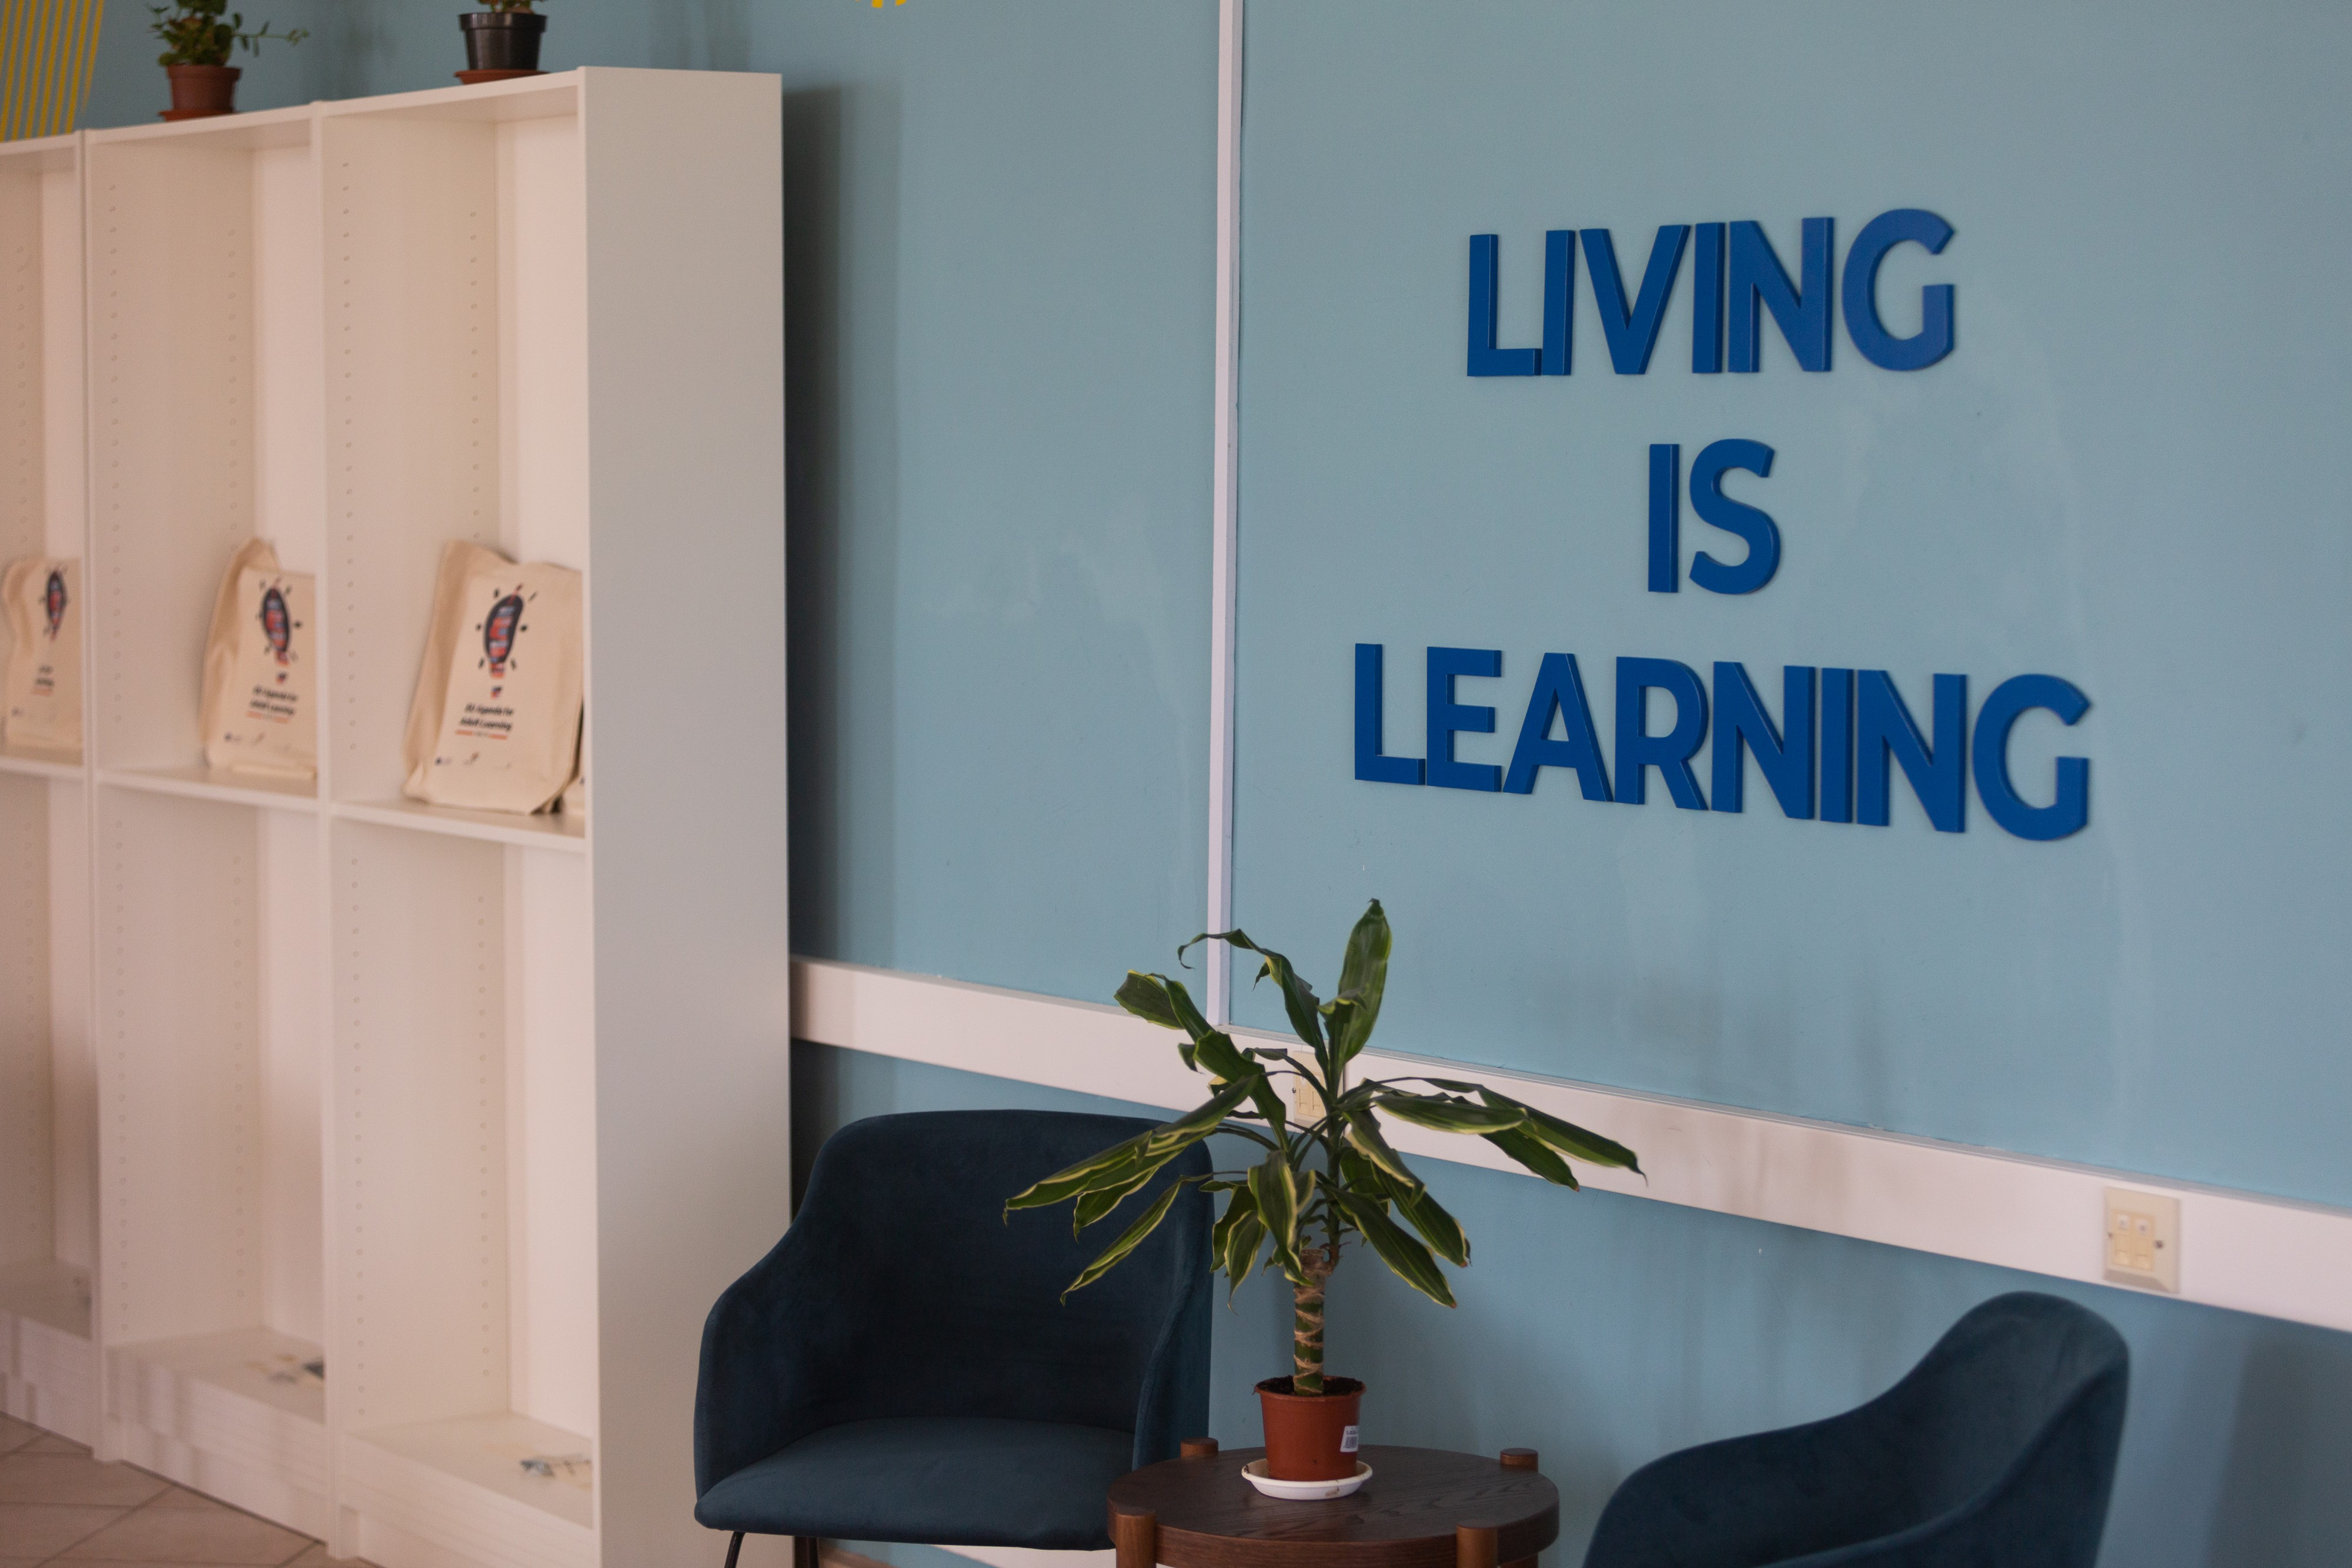 Living is learning photo